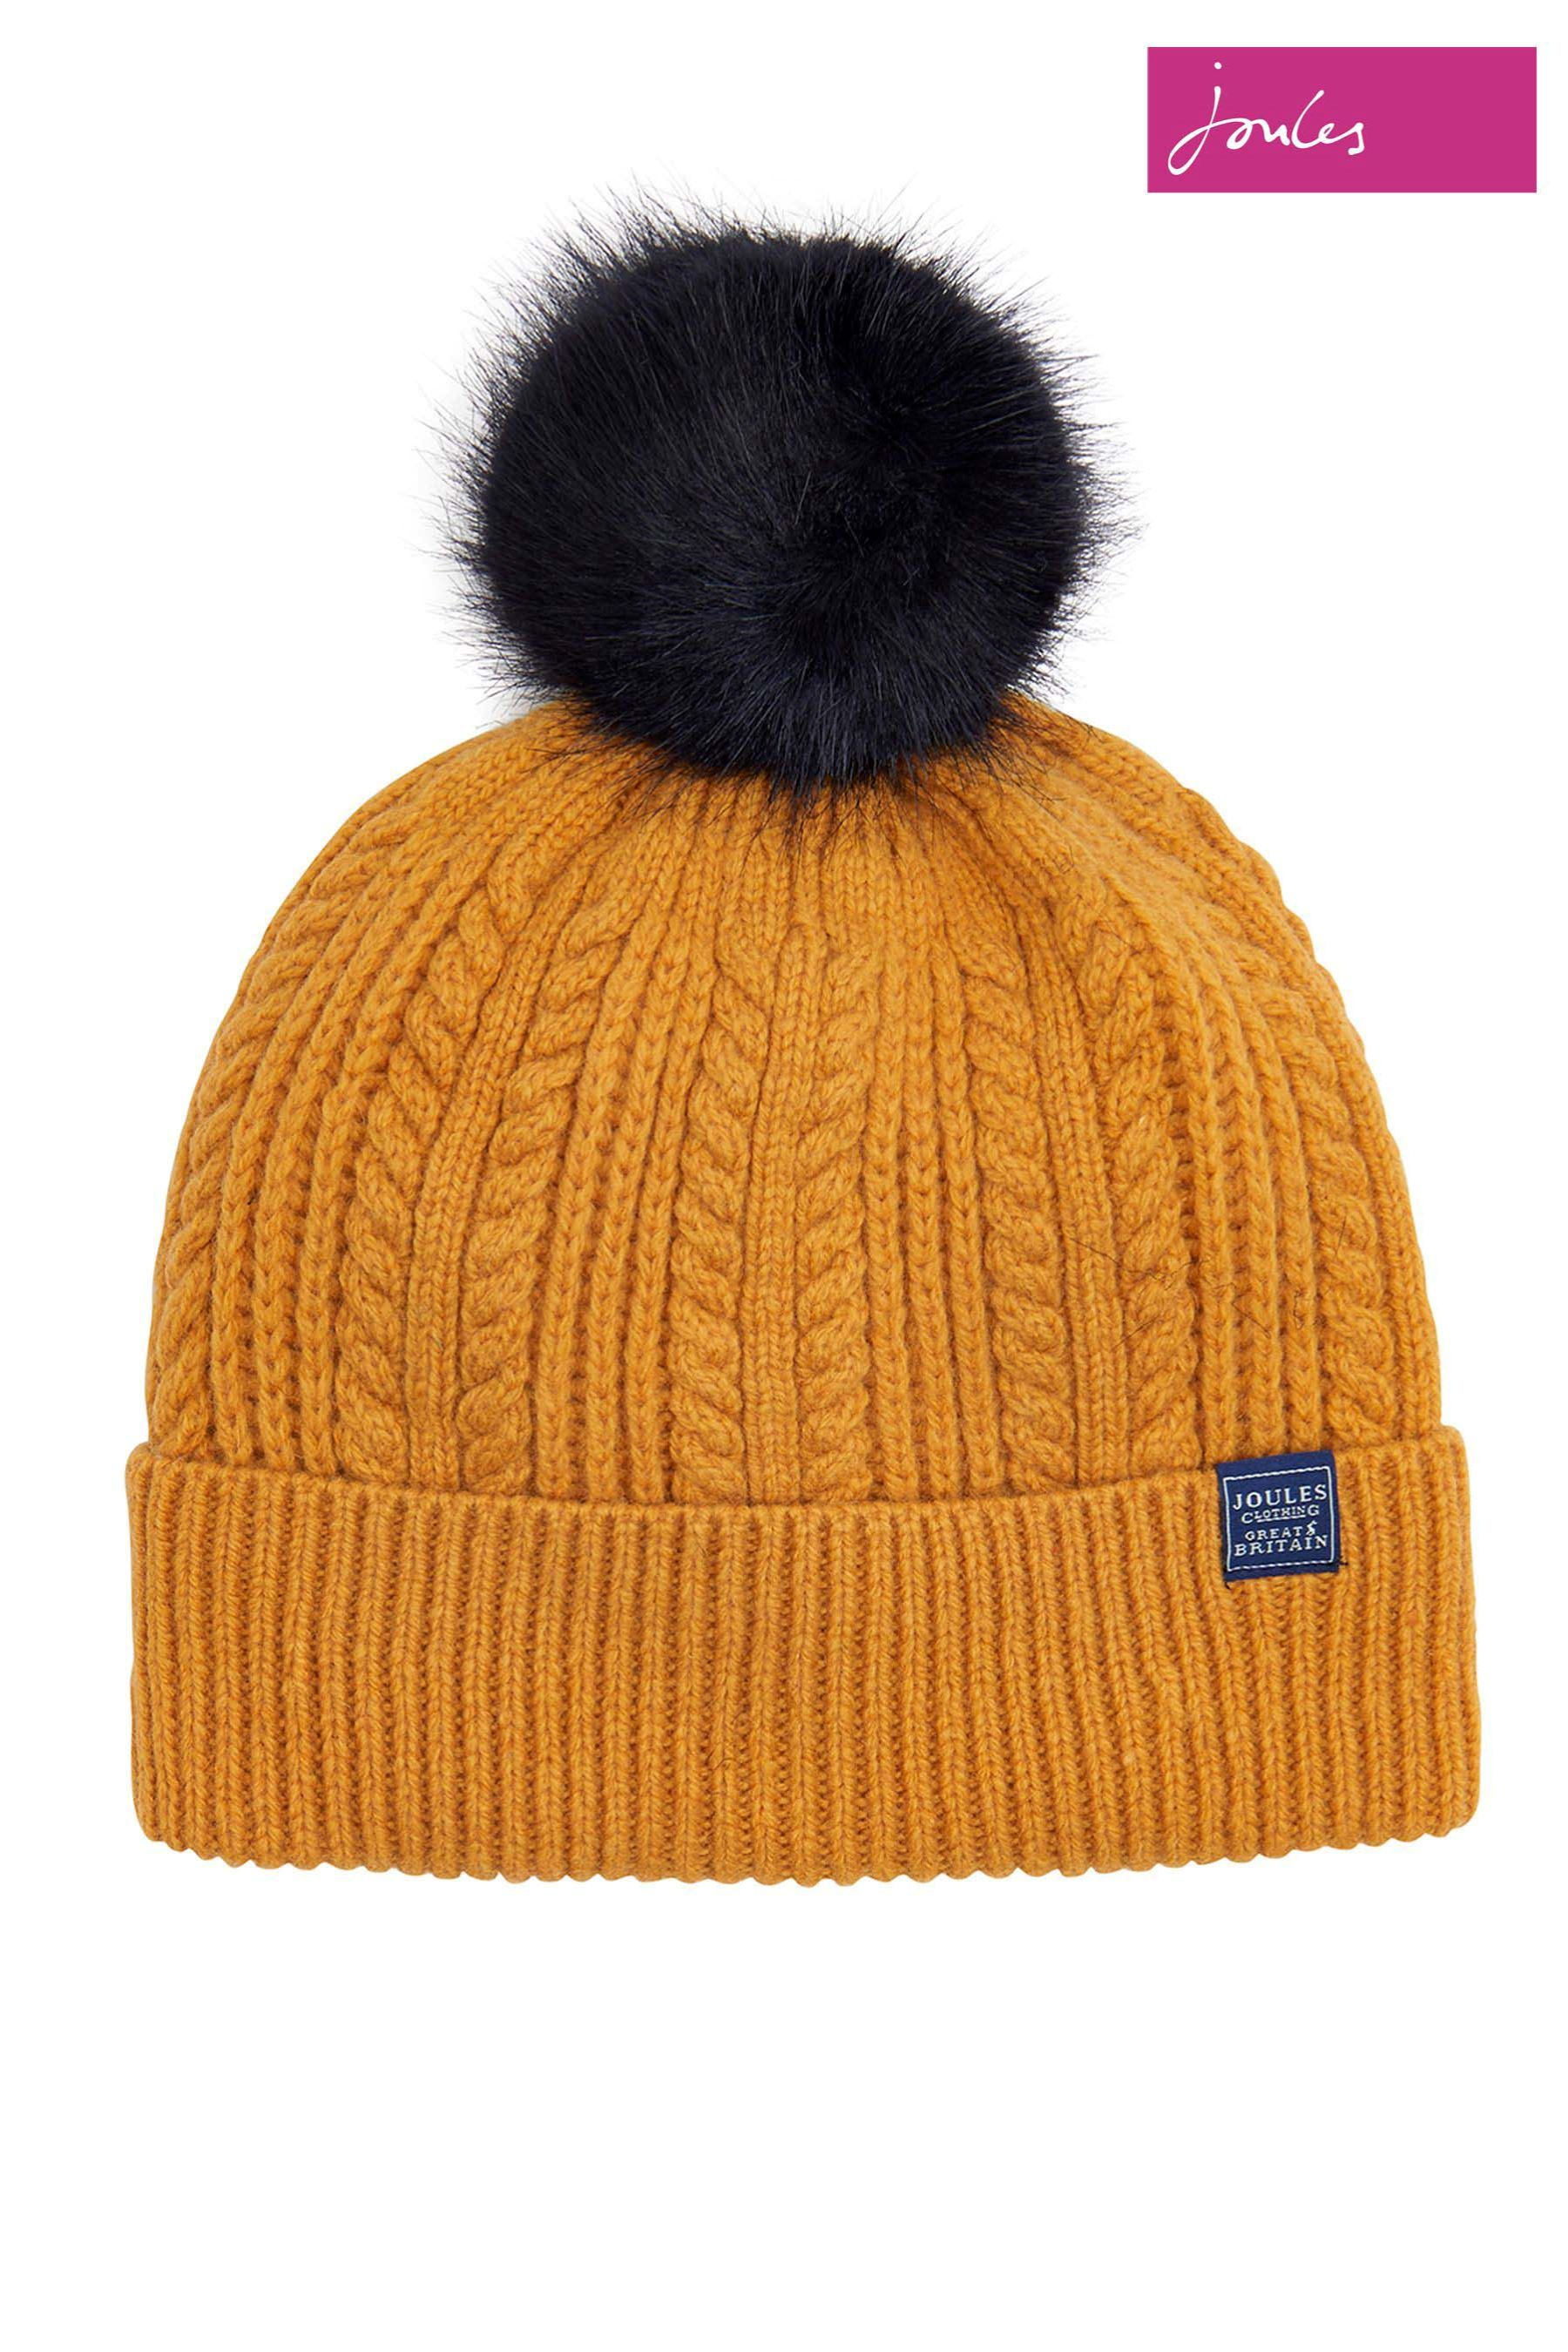 ef9bb1a5263 Womens Joules Gold Fine Cable Hat With Faux Fur Pom - Gold ...